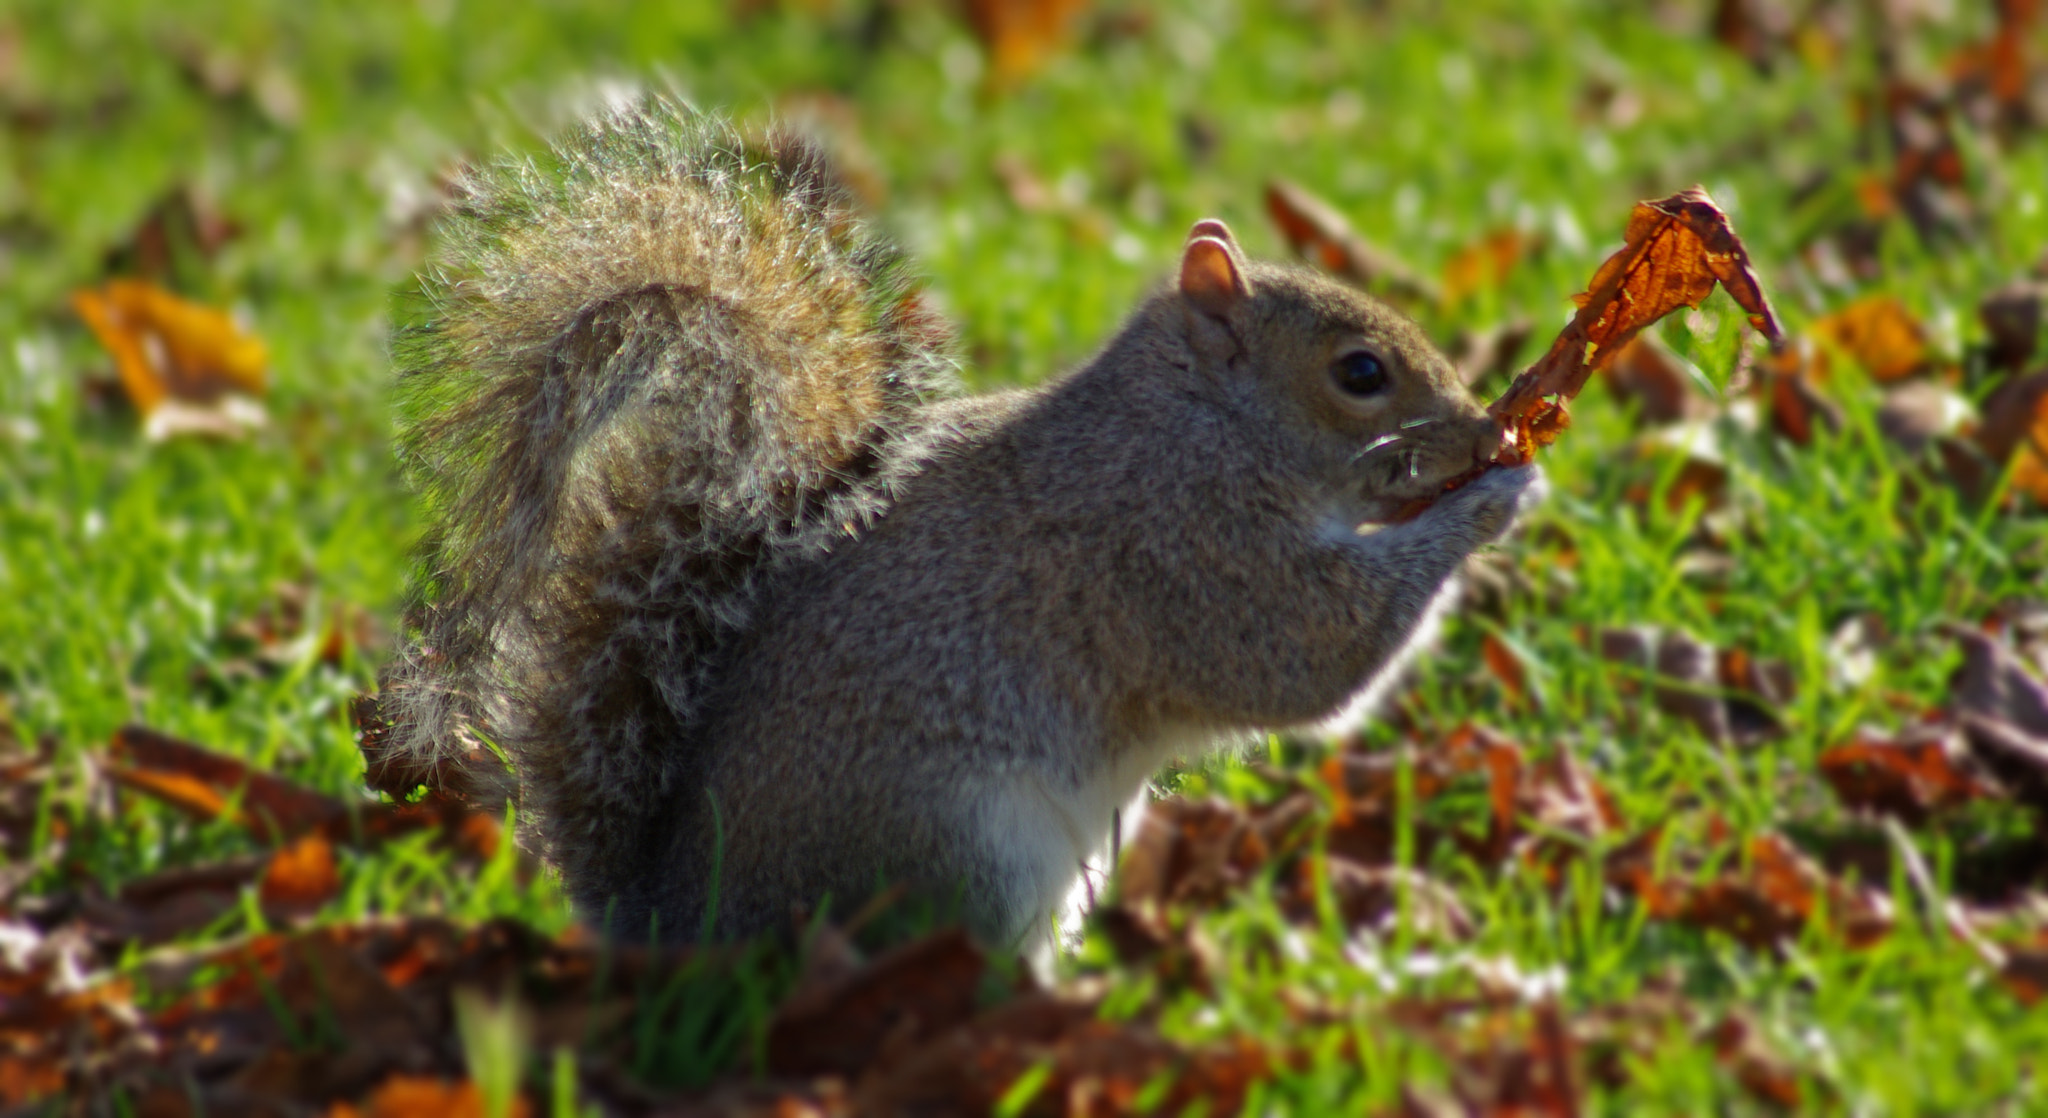 Photograph A Squirl With A Leaf by Lee Ashman on 500px